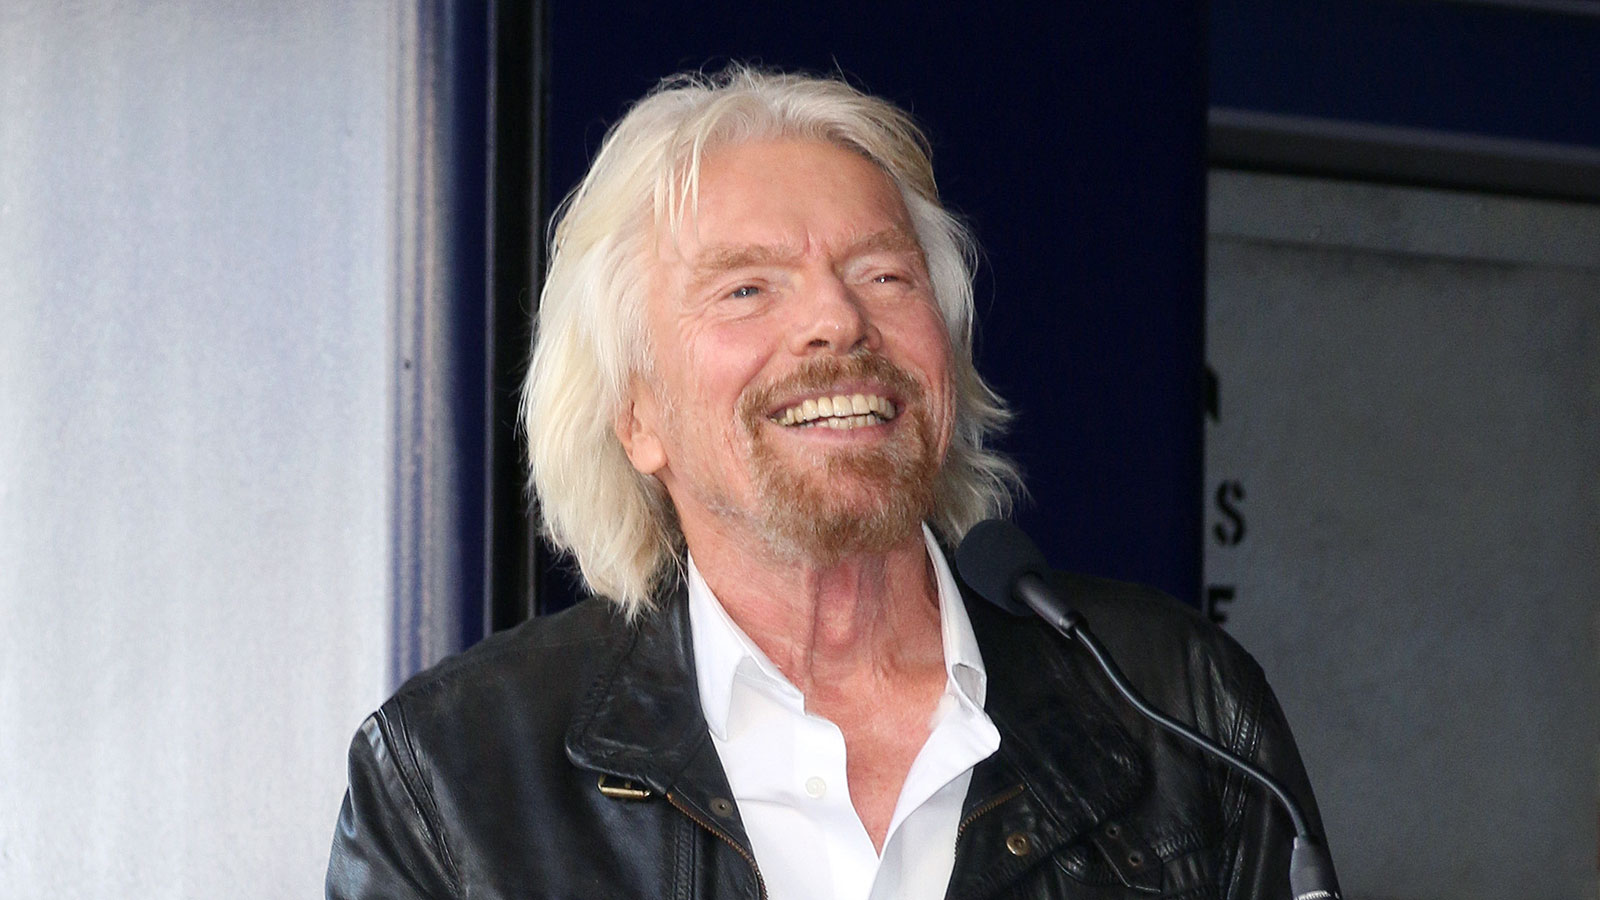 Why you should have a side hustle, says Richard Branson, who started Virgin as a side gig